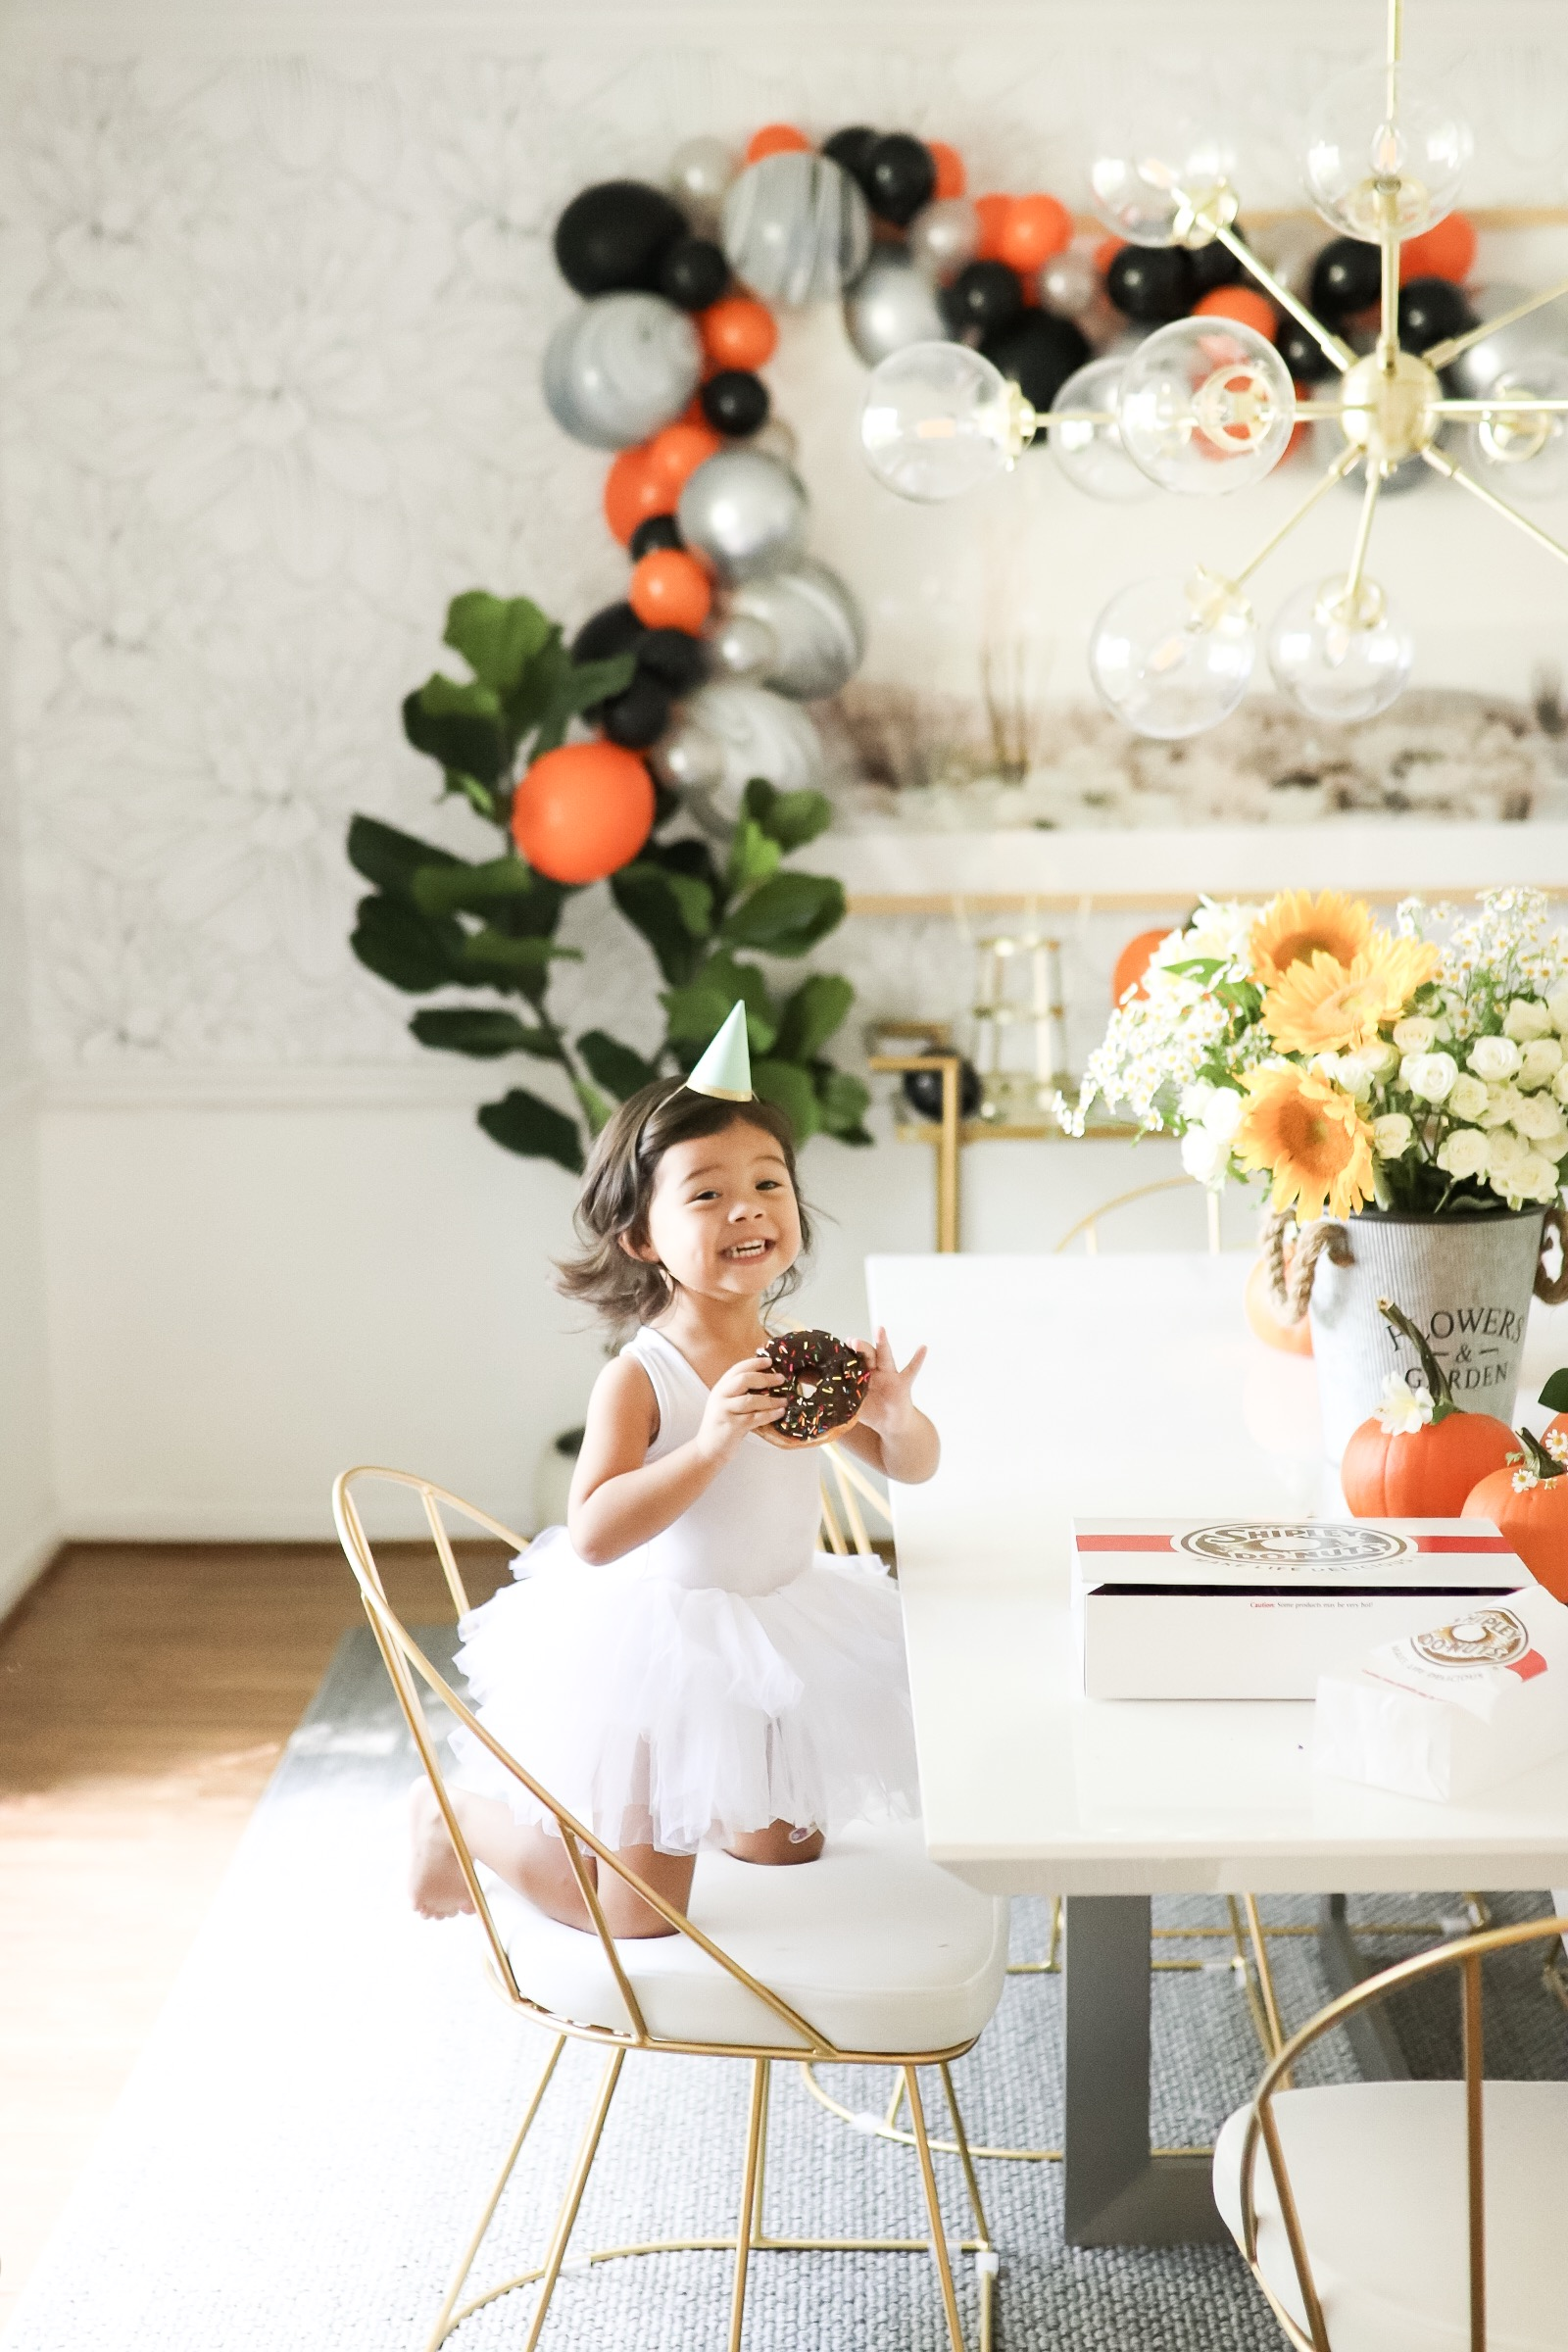 Fall Harvest Party Décor Dining Room Set Up in 30 Minutes Ballon Garland Halloween